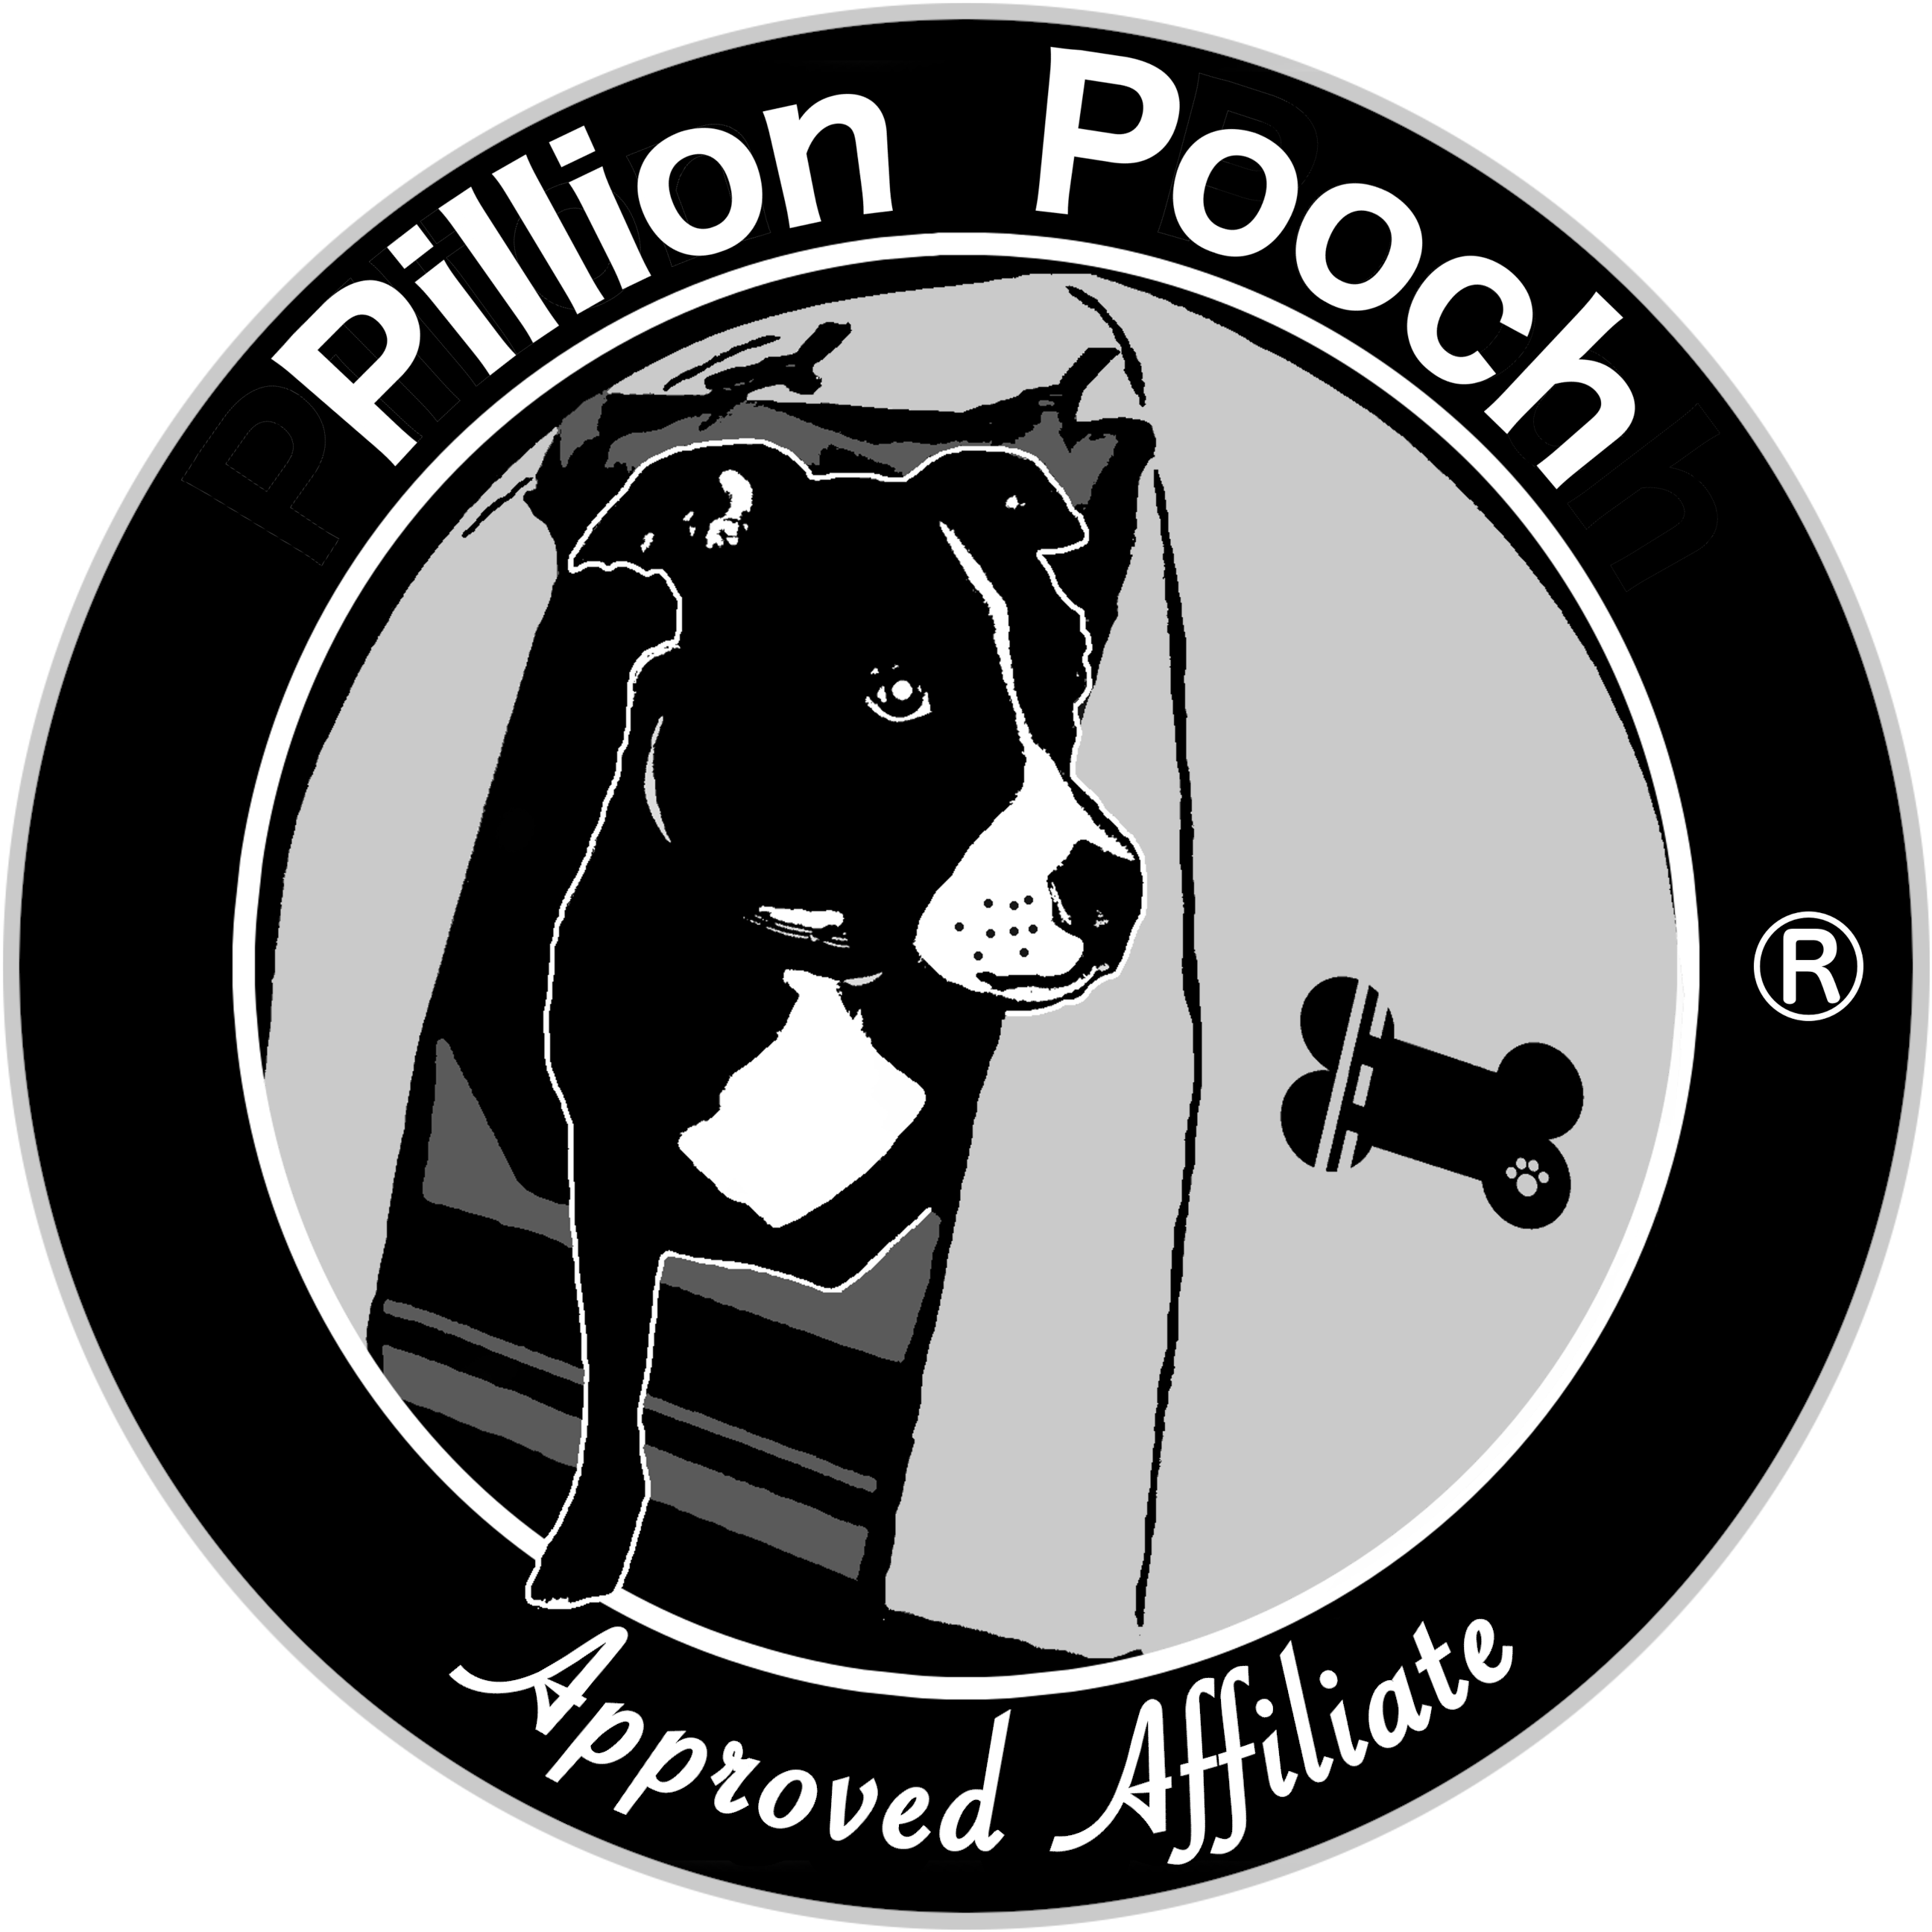 Pillion Pooch Approved Affiliate with Grey Border